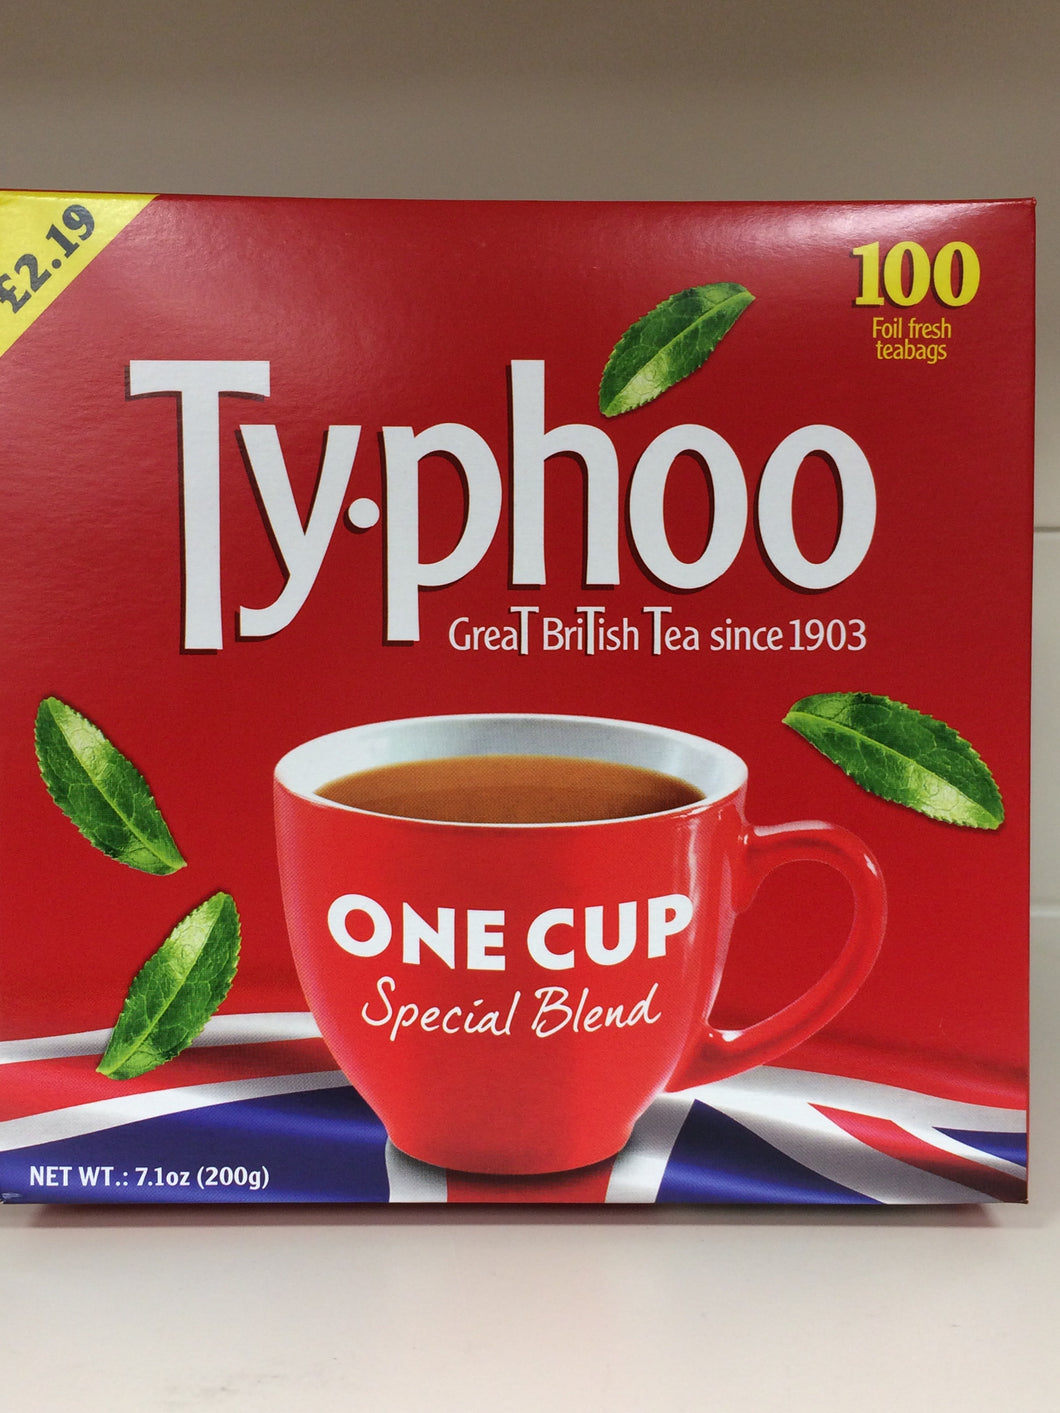 Typhoo One Cup 100 bags